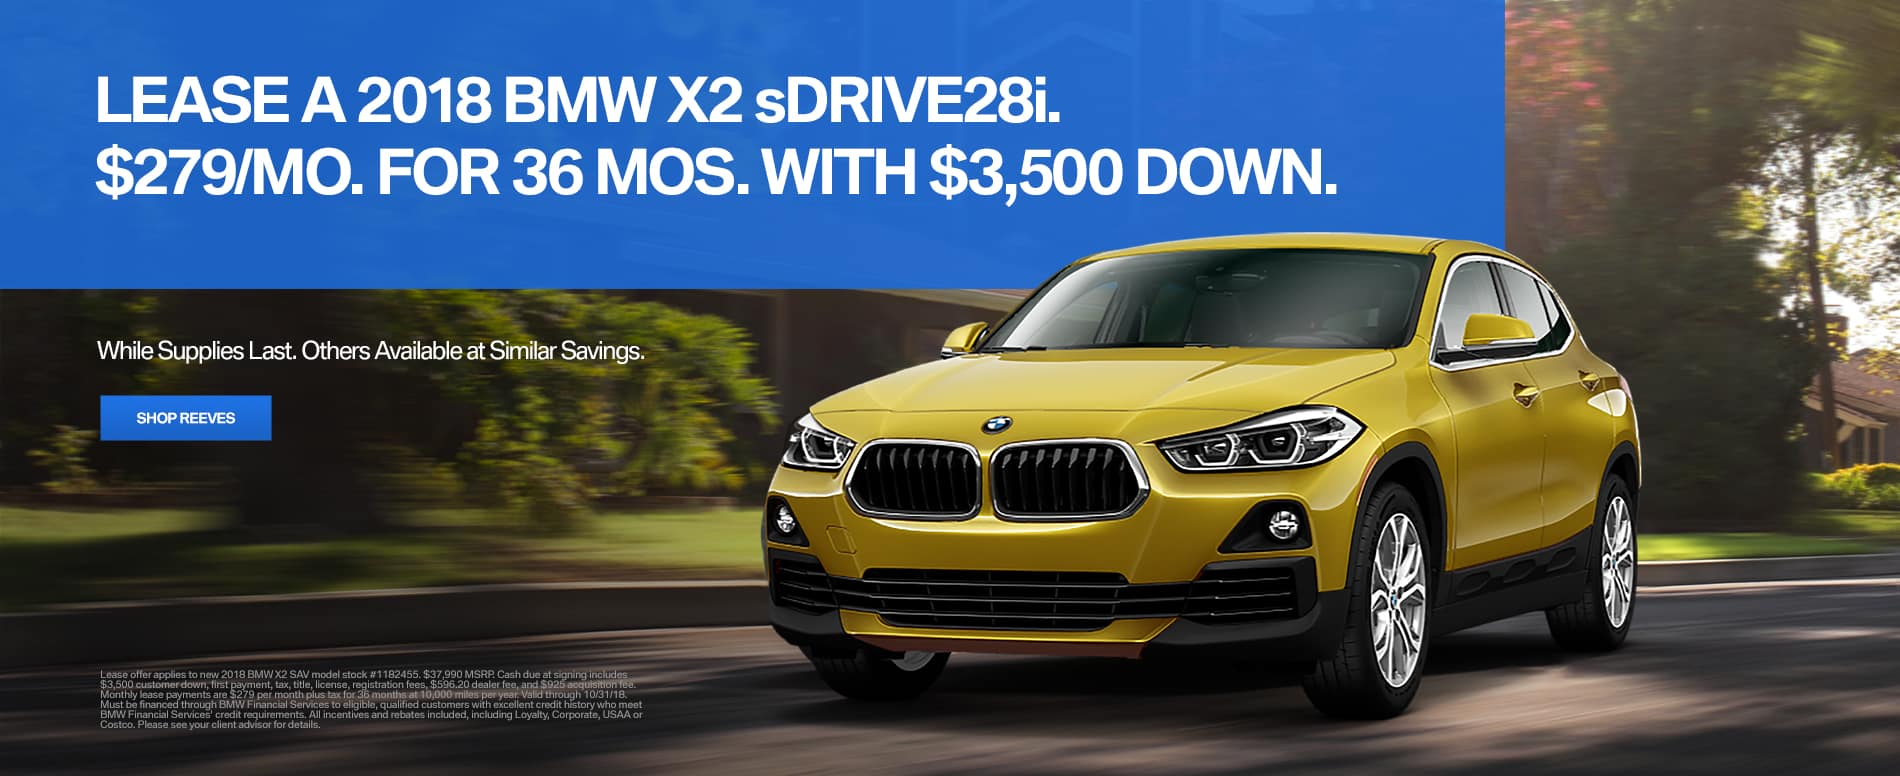 BMW X2 October Lease Special